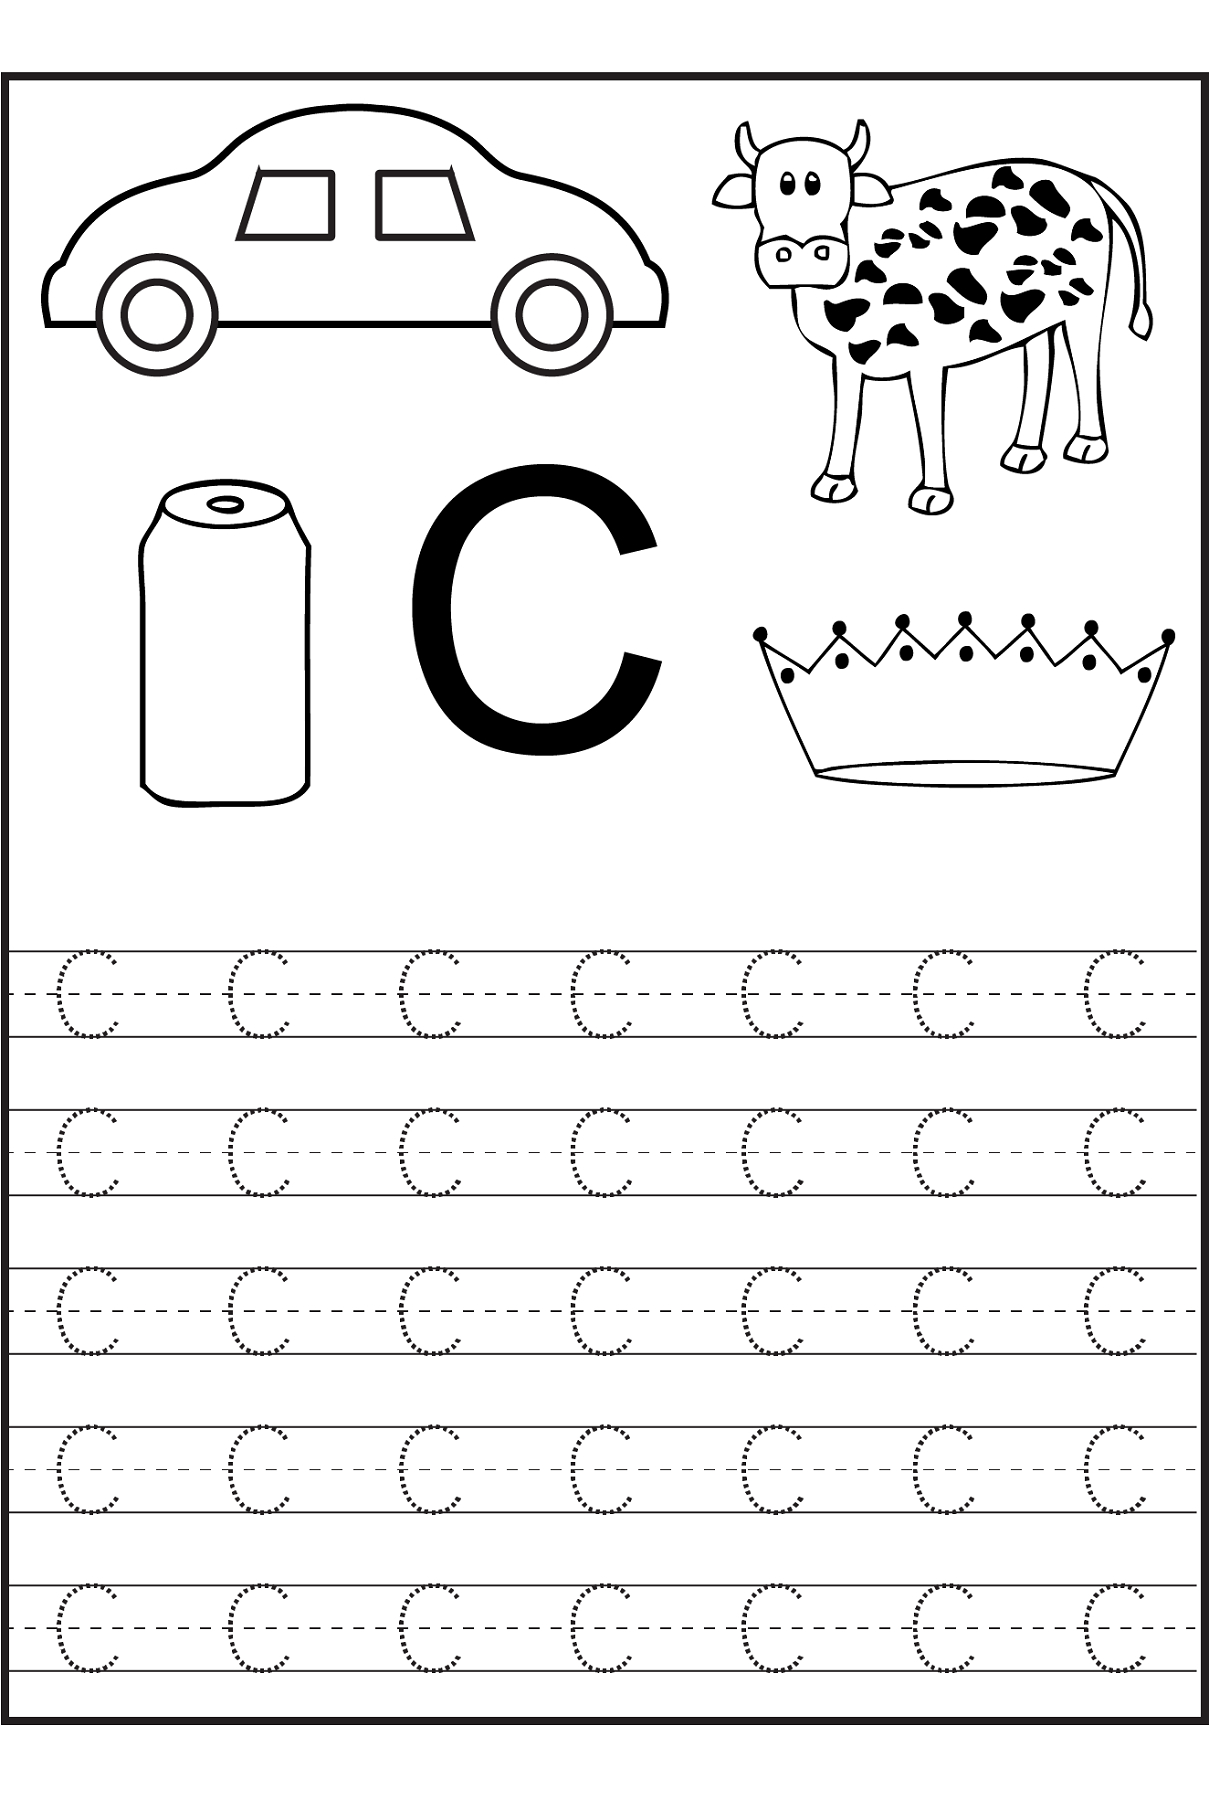 Letter C Tracing Worksheets For Preschoolers Awesome 82 Best with regard to C Letter Worksheets